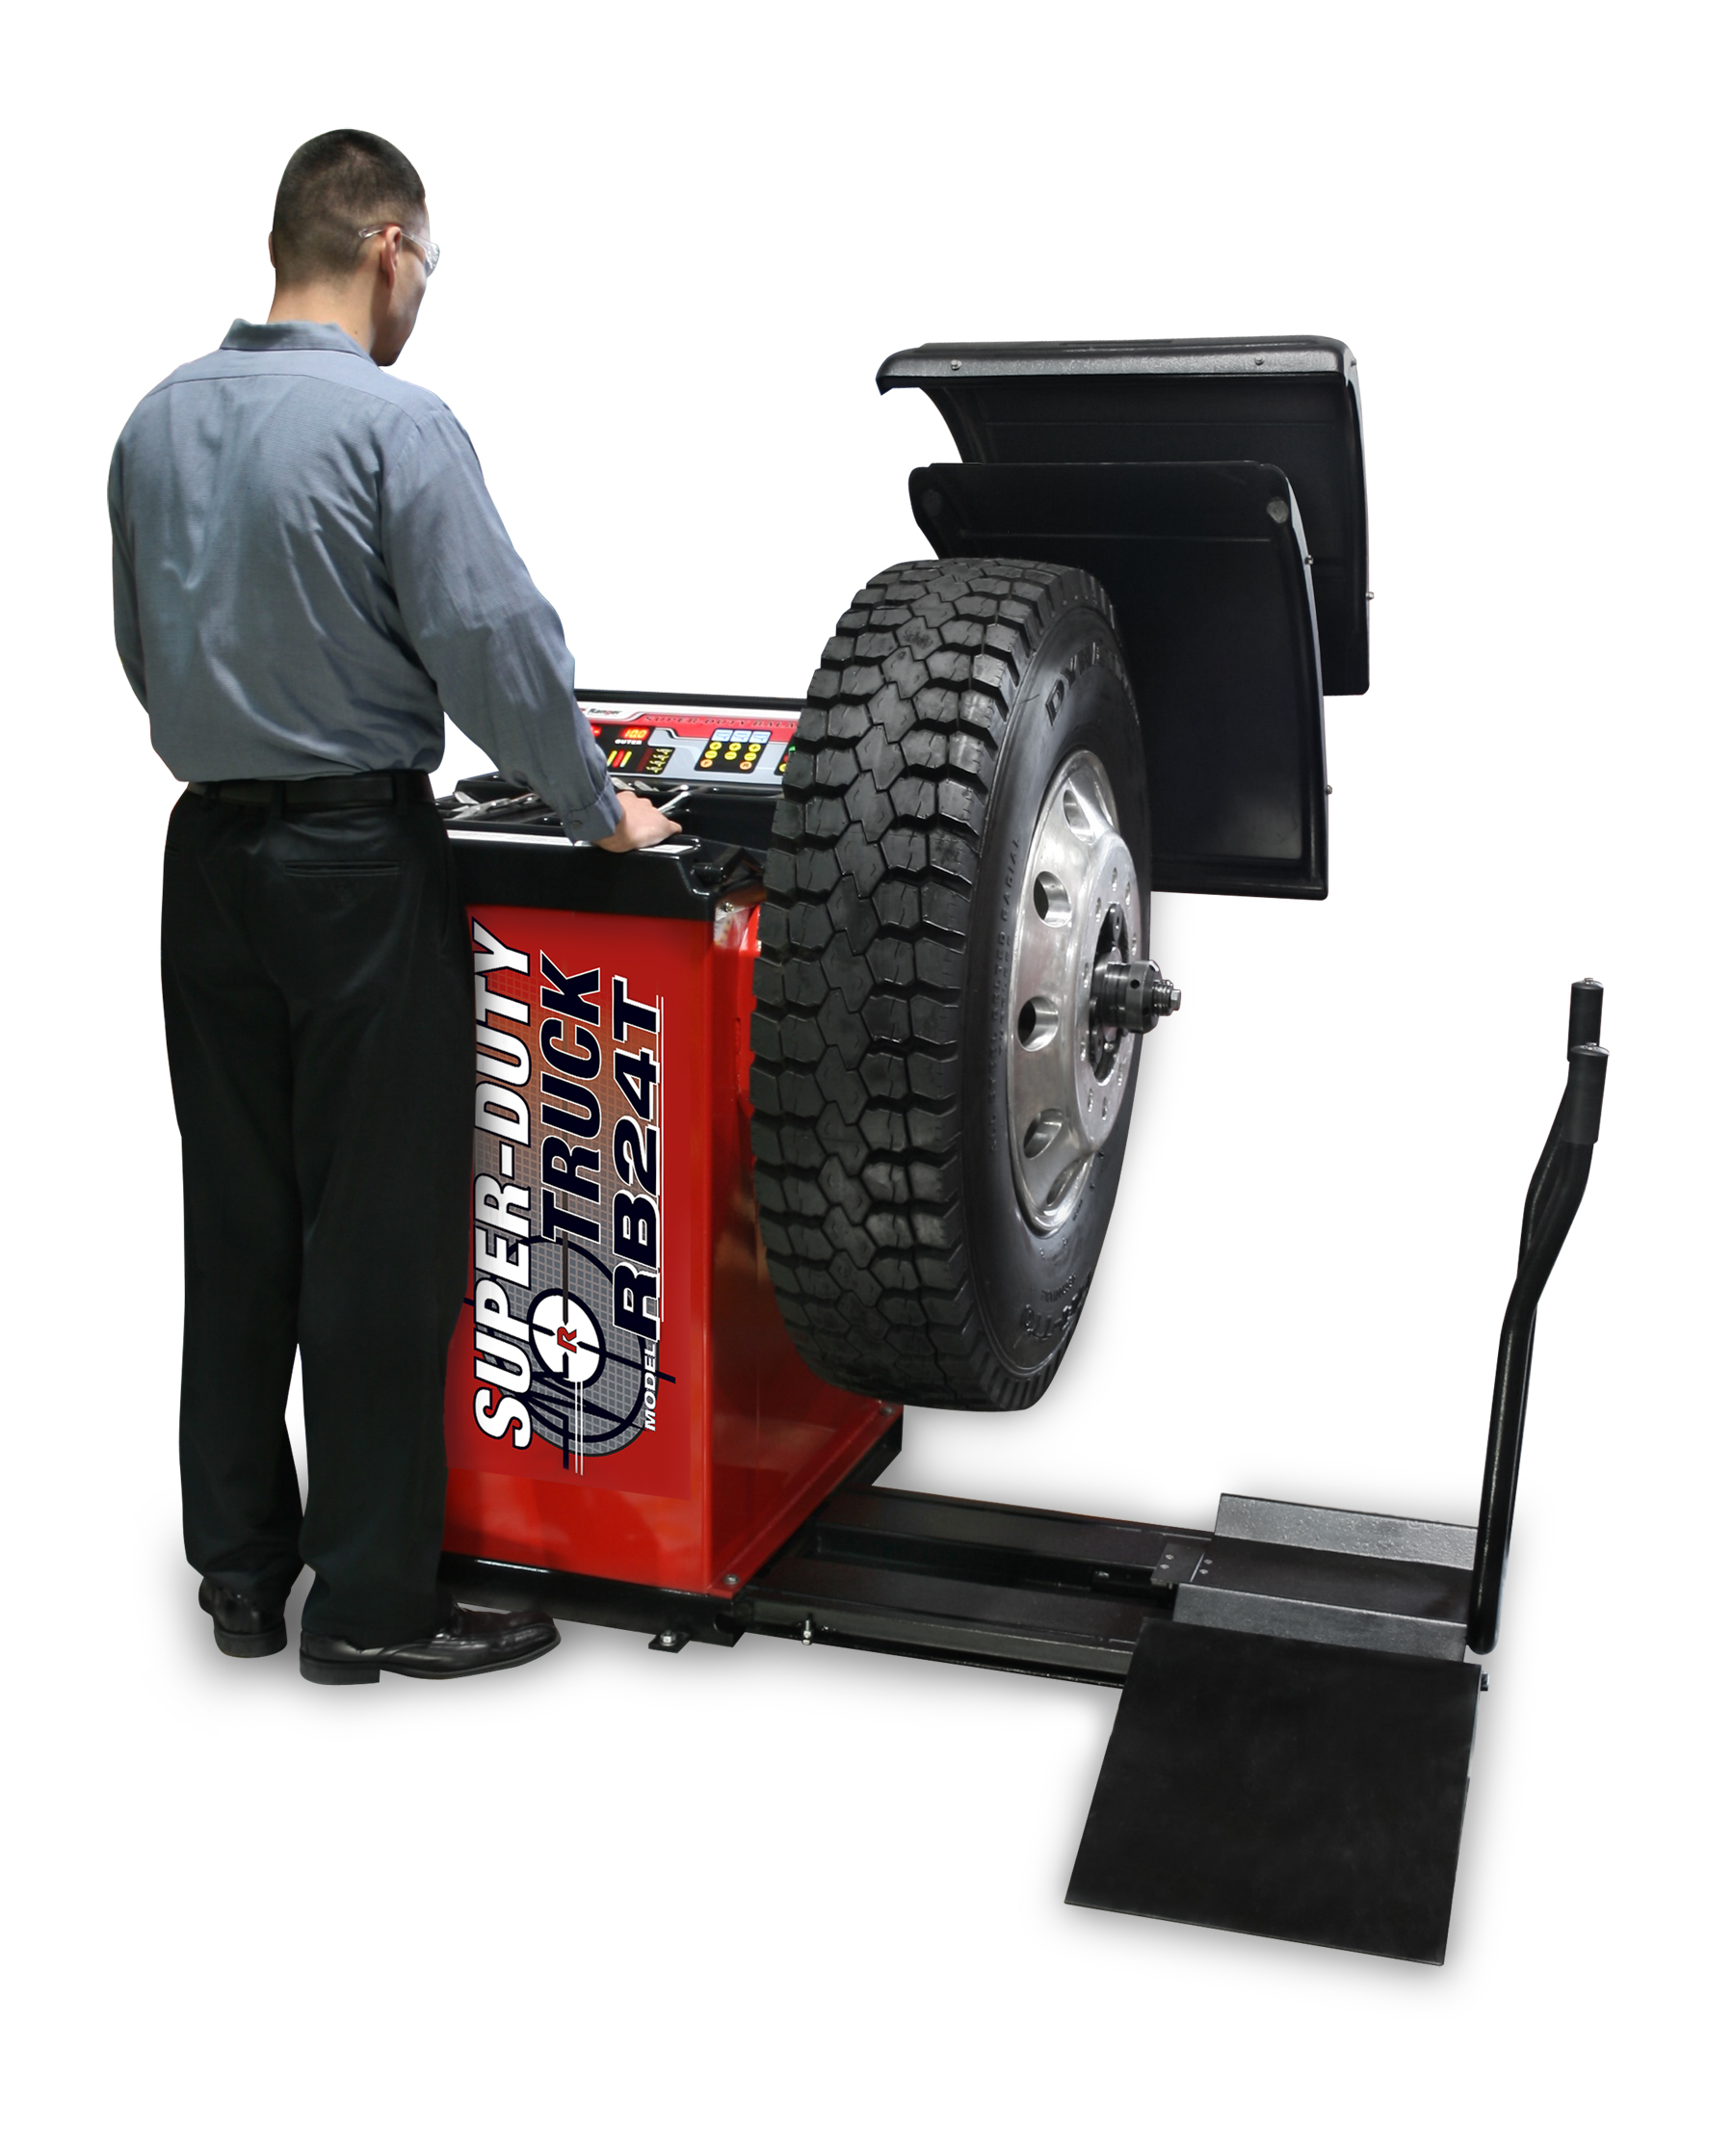 Ranger RB24T Wheel Balancer